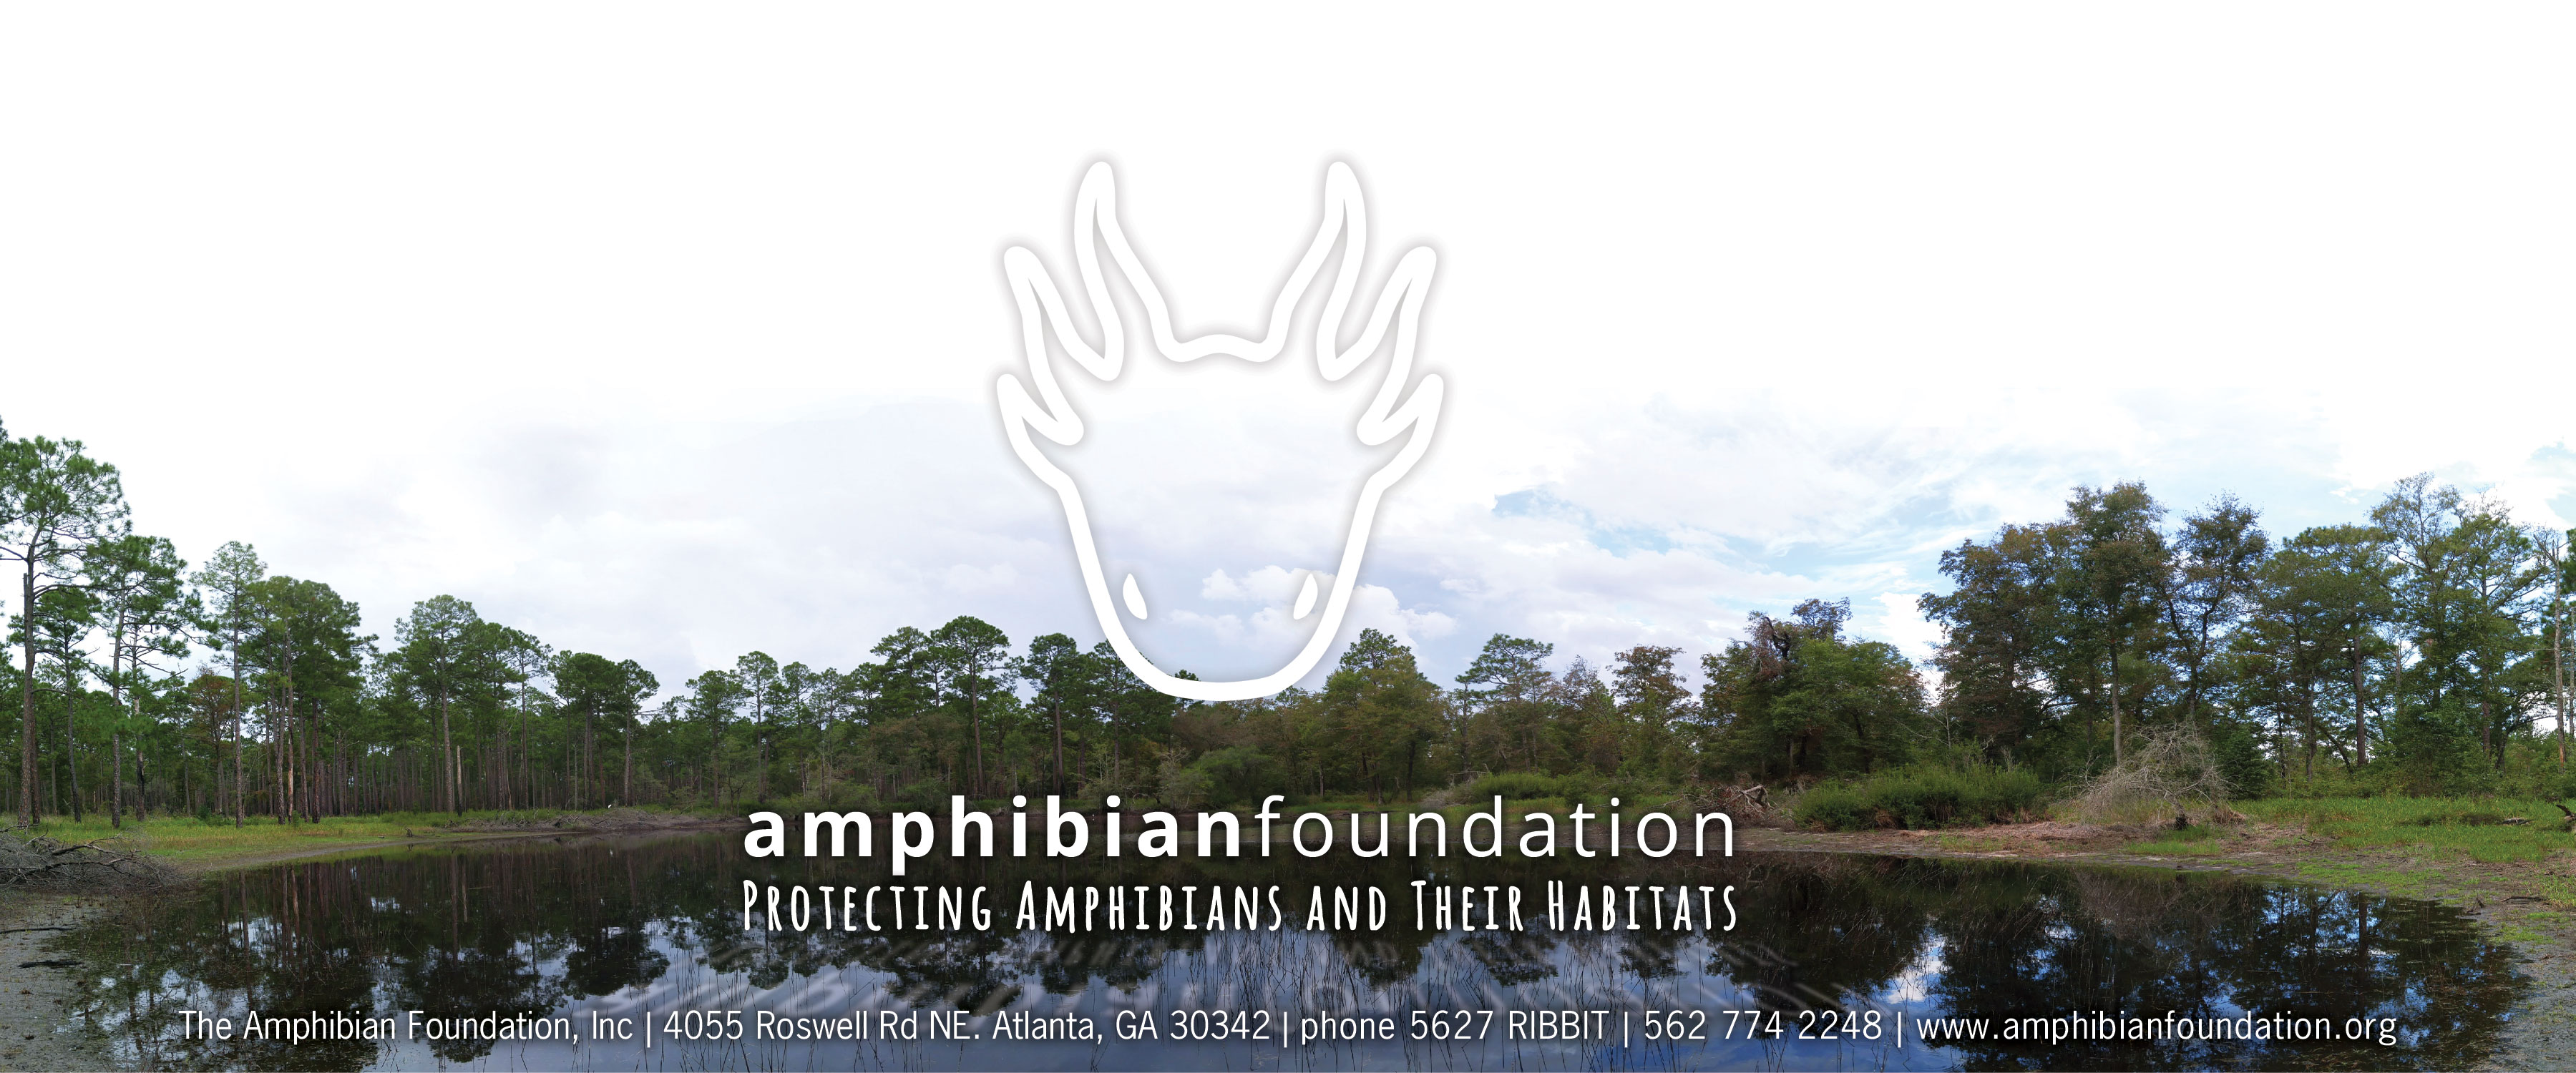 The Amphibian Foundation Logo